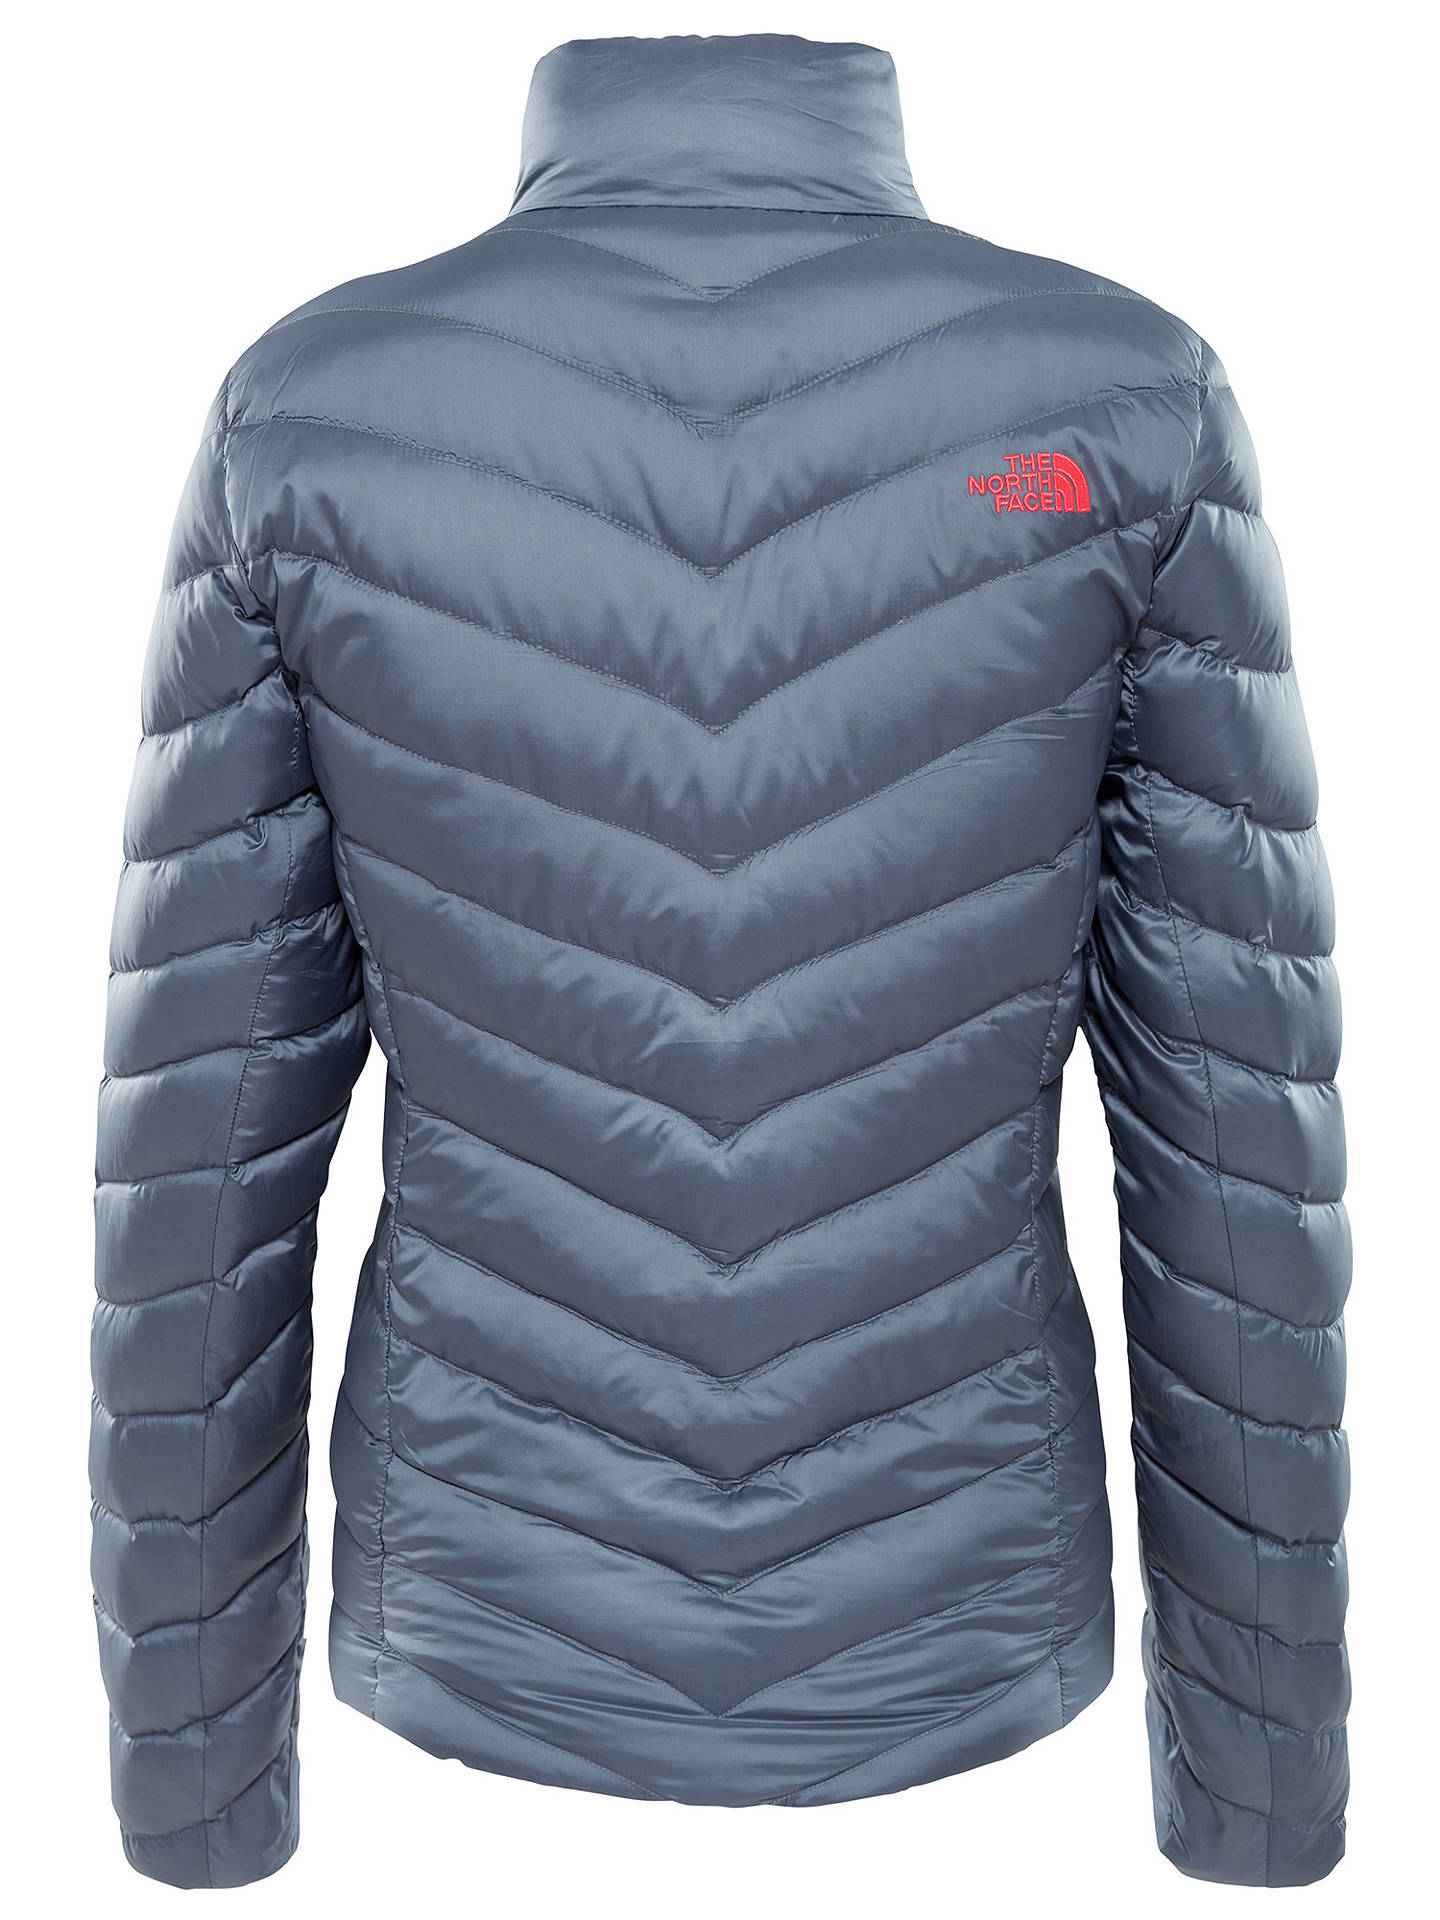 BuyThe North Face Trevail Women's Jacket, Grisaille Grey, L Online at johnlewis.com